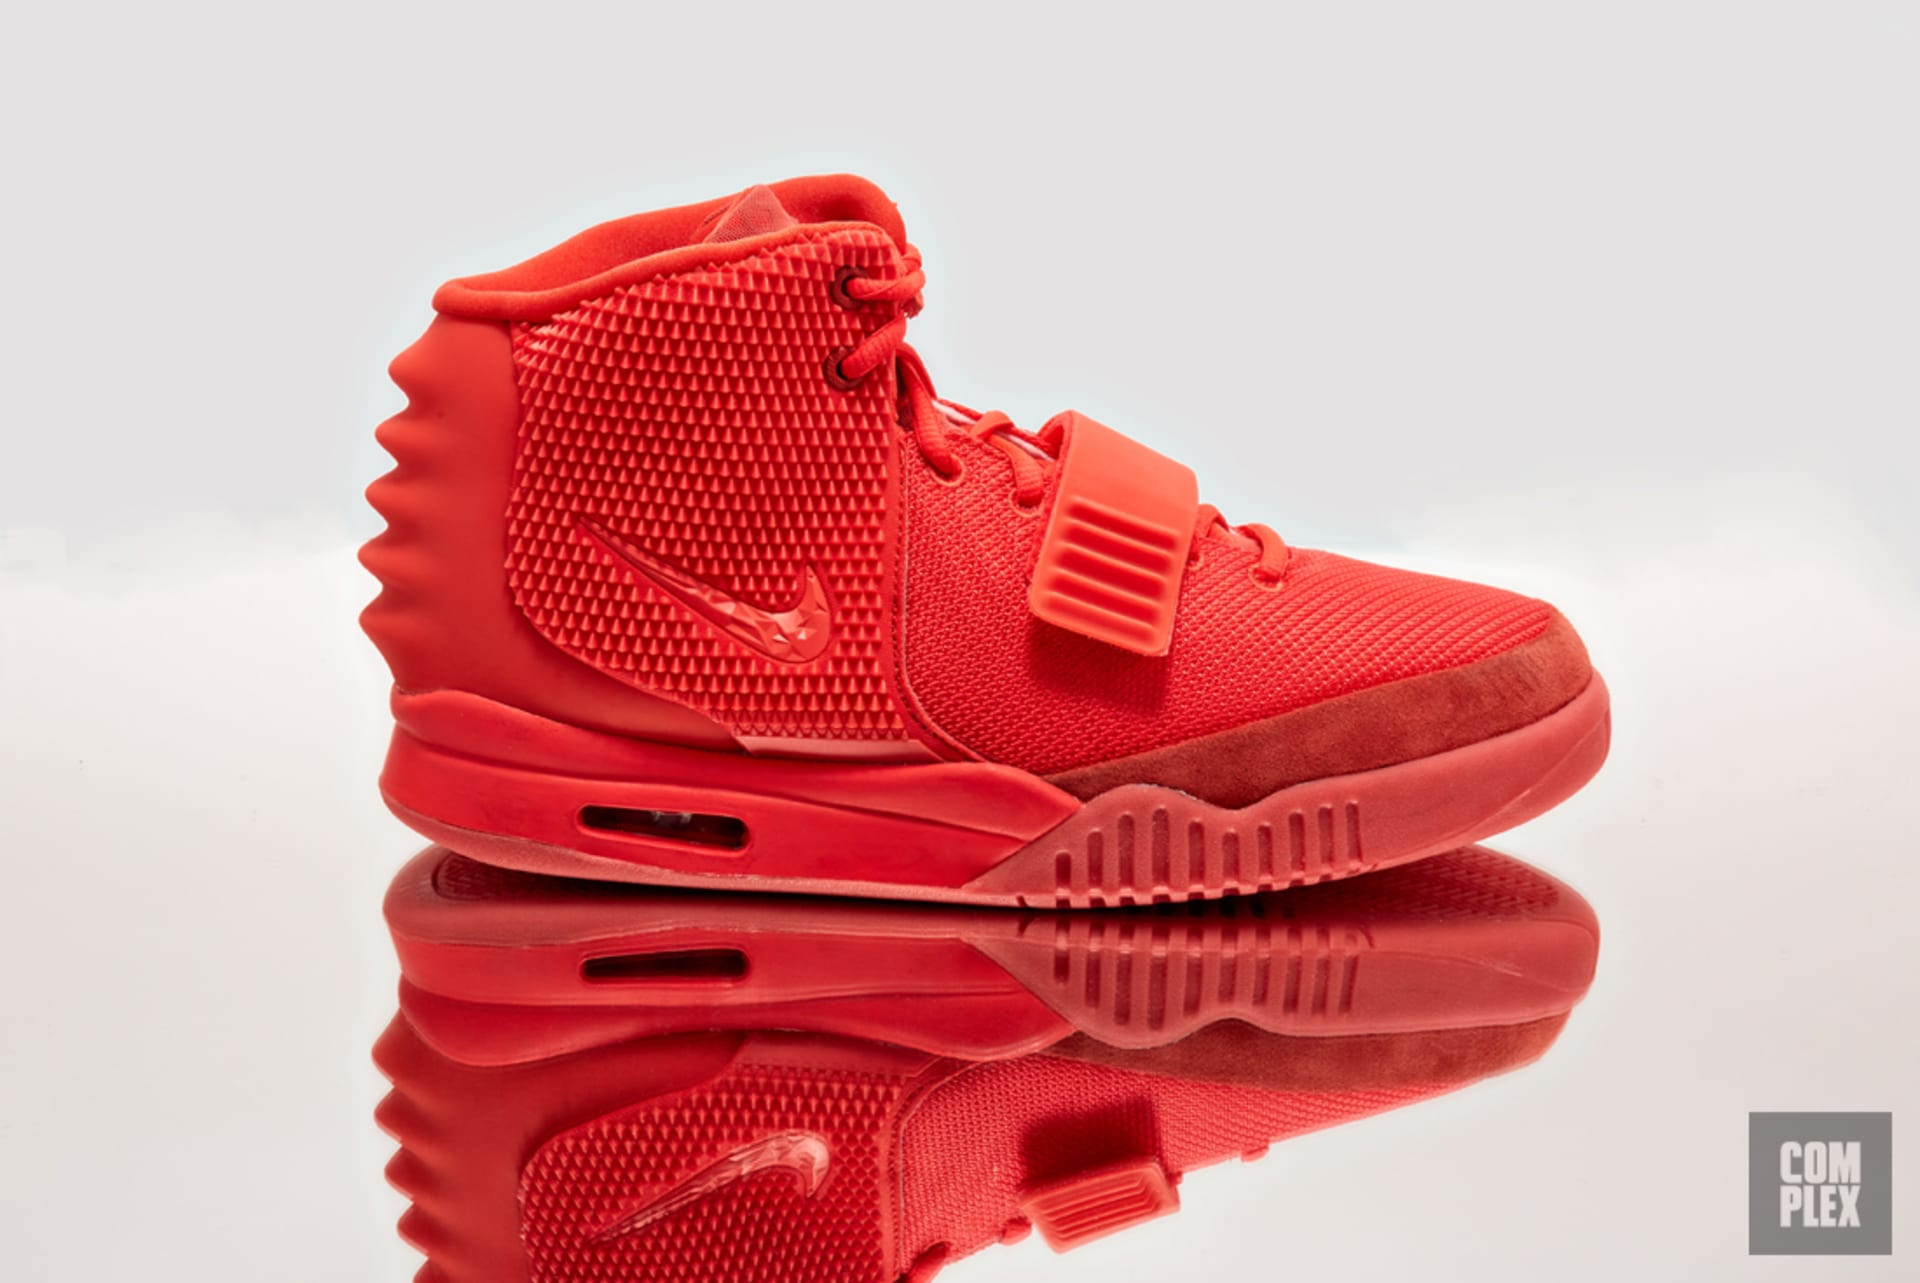 8070f3fbbf3e83 How the Air Yeezy 2 Led to Kanye West s Greatest Success — and ...